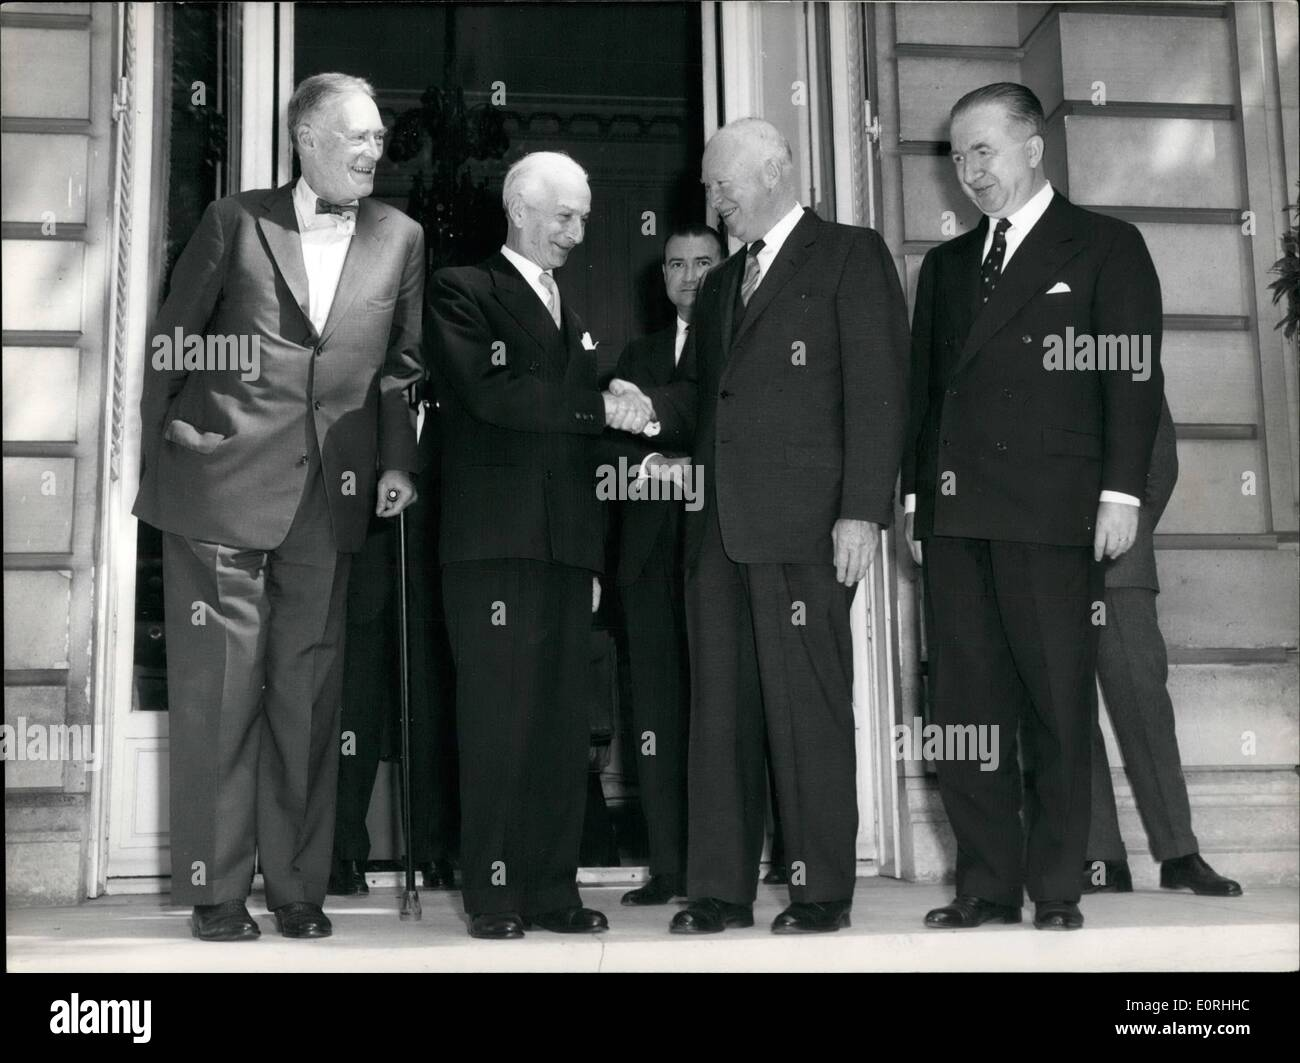 Sep. 09, 1959 - Photo shows President Eisenhower photographed with the Italian premier, Signor Segni at the American ambassador's Paris residence this morning. - Stock Image